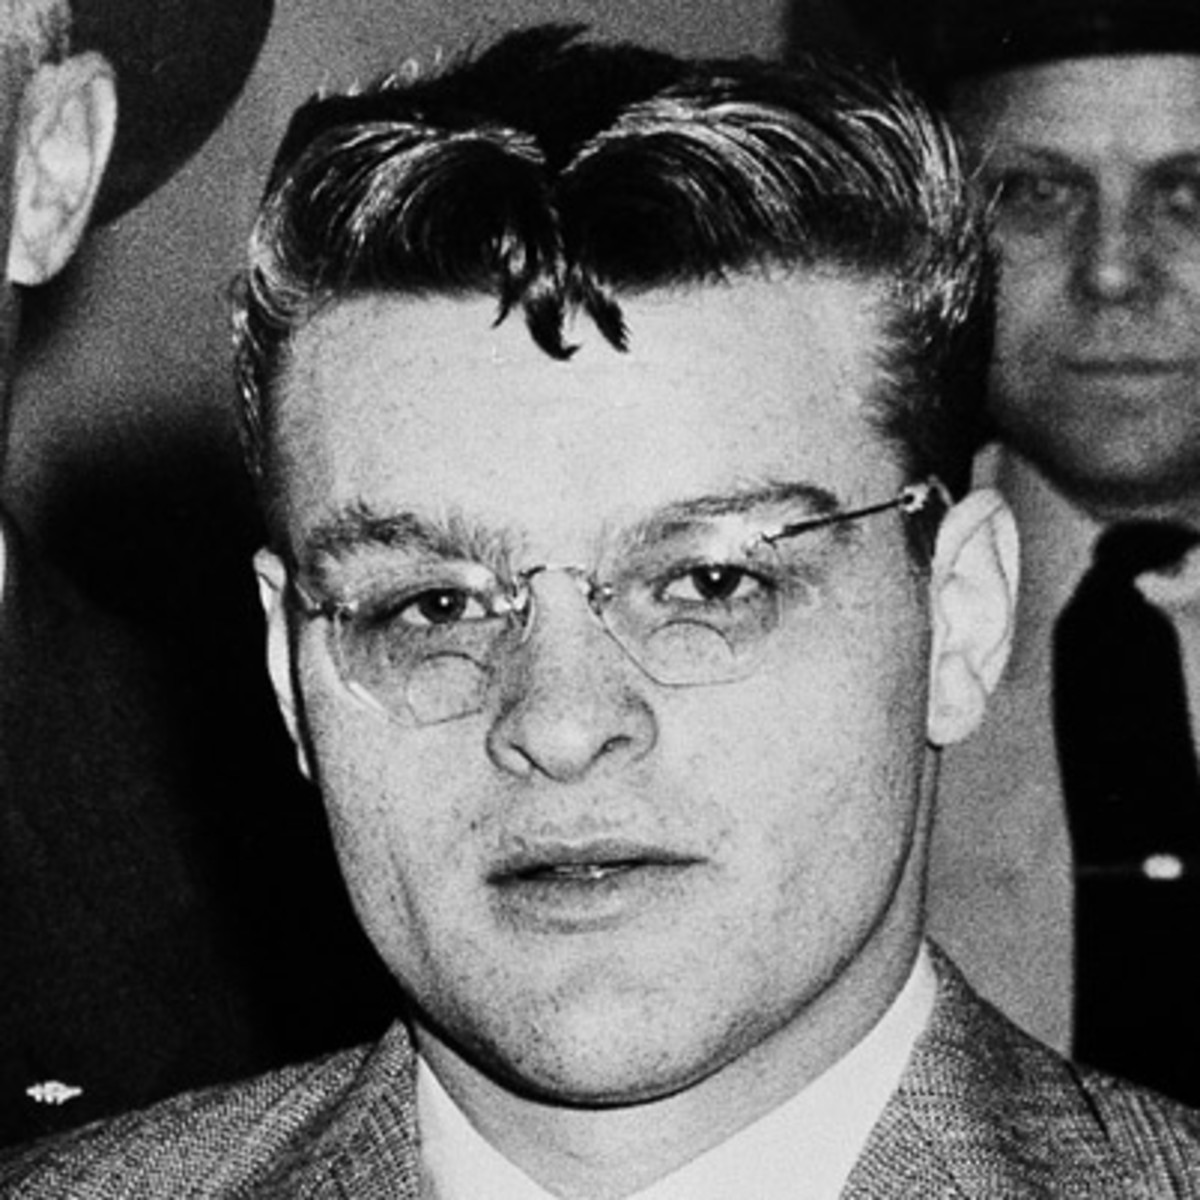 Charles Starkweather - Murderer - Biography.com